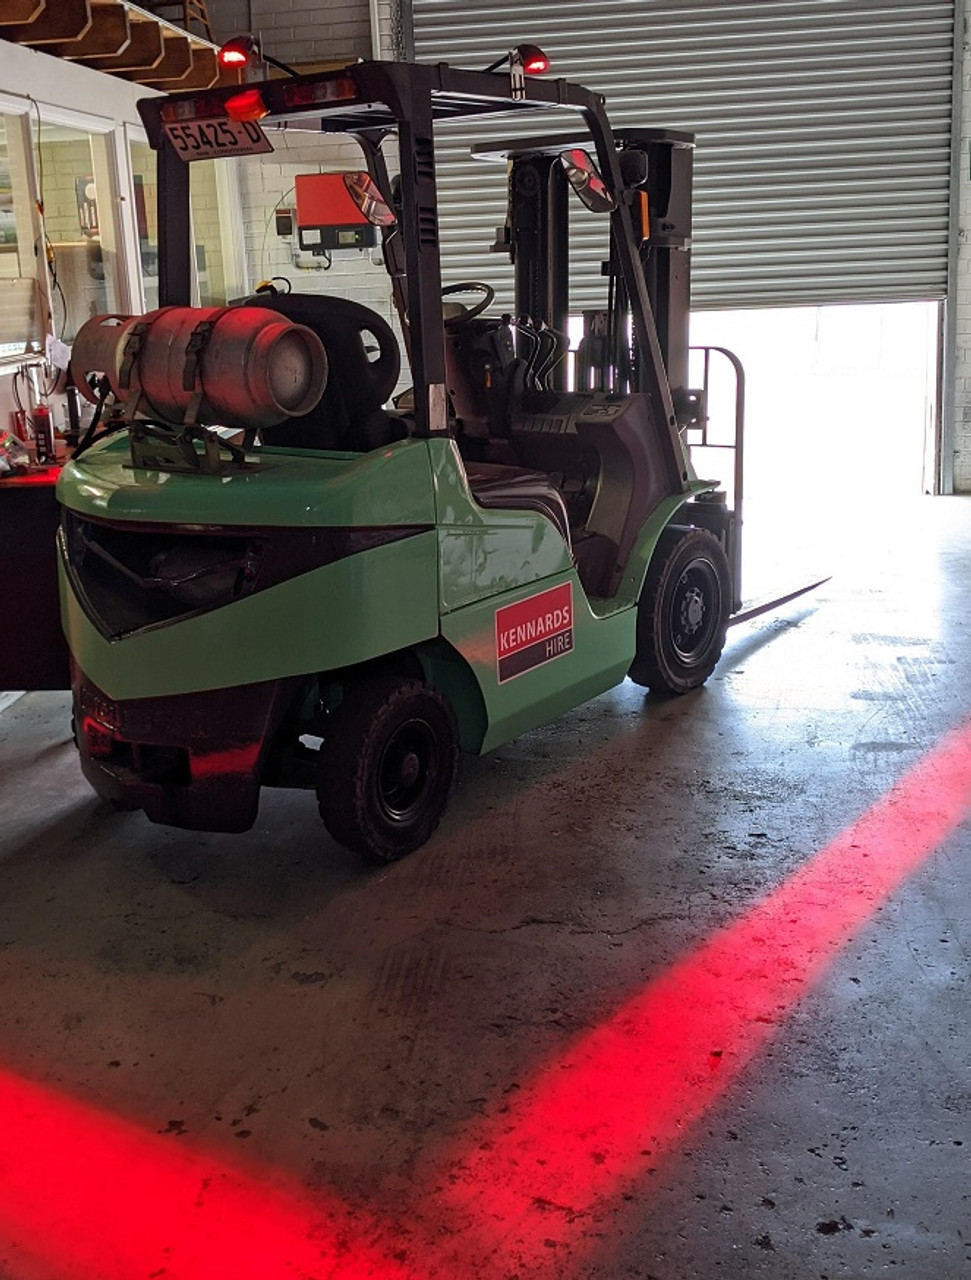 Safety Halo System Kennards Hire Forklift Ultimate LED